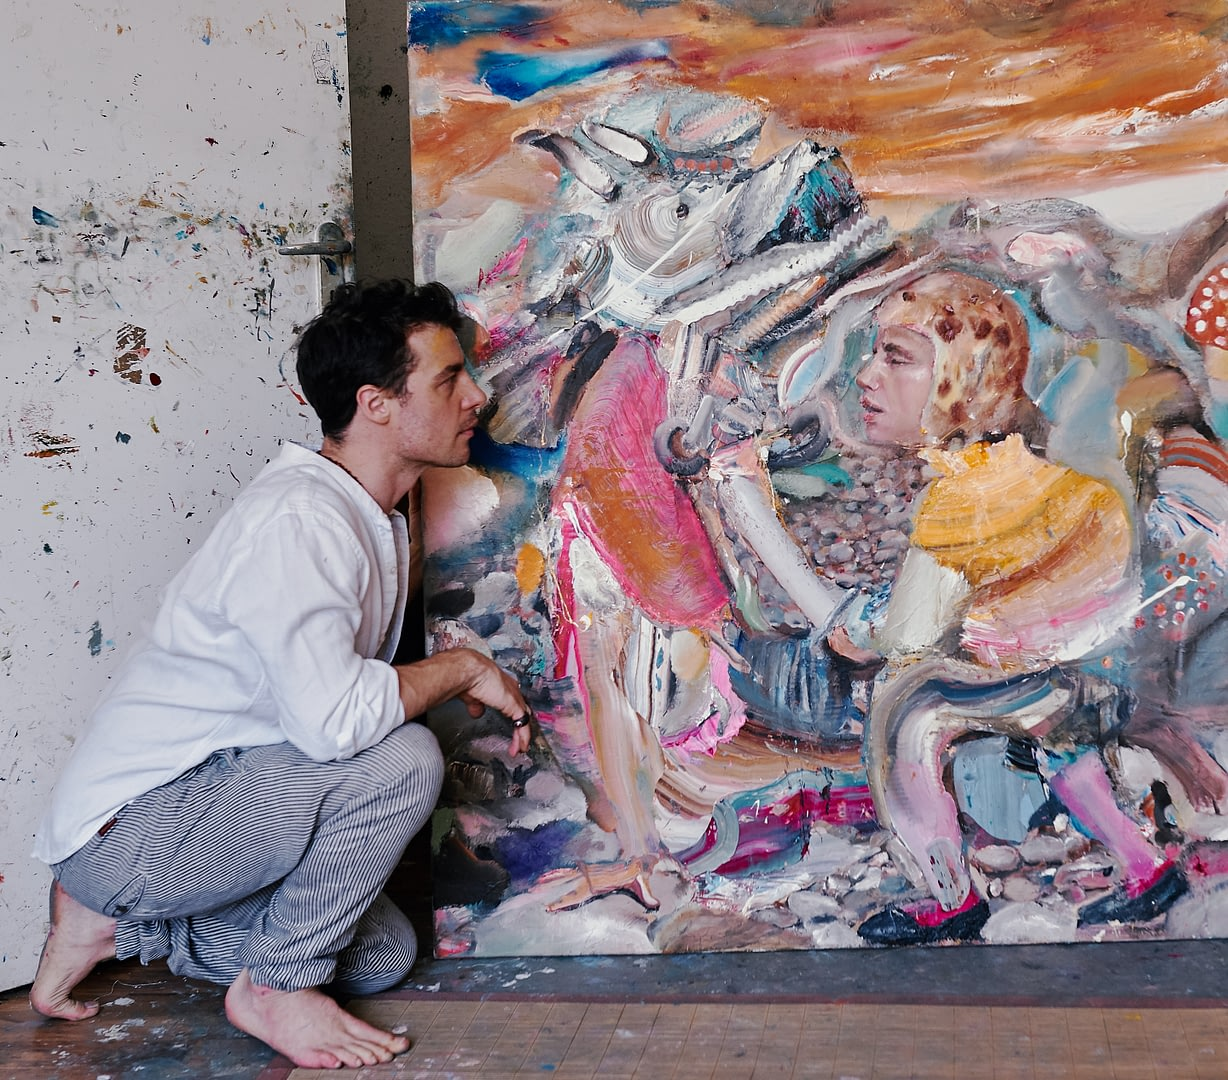 Artist Portrait of the Painter Stefano Bosis for 10011mag 6